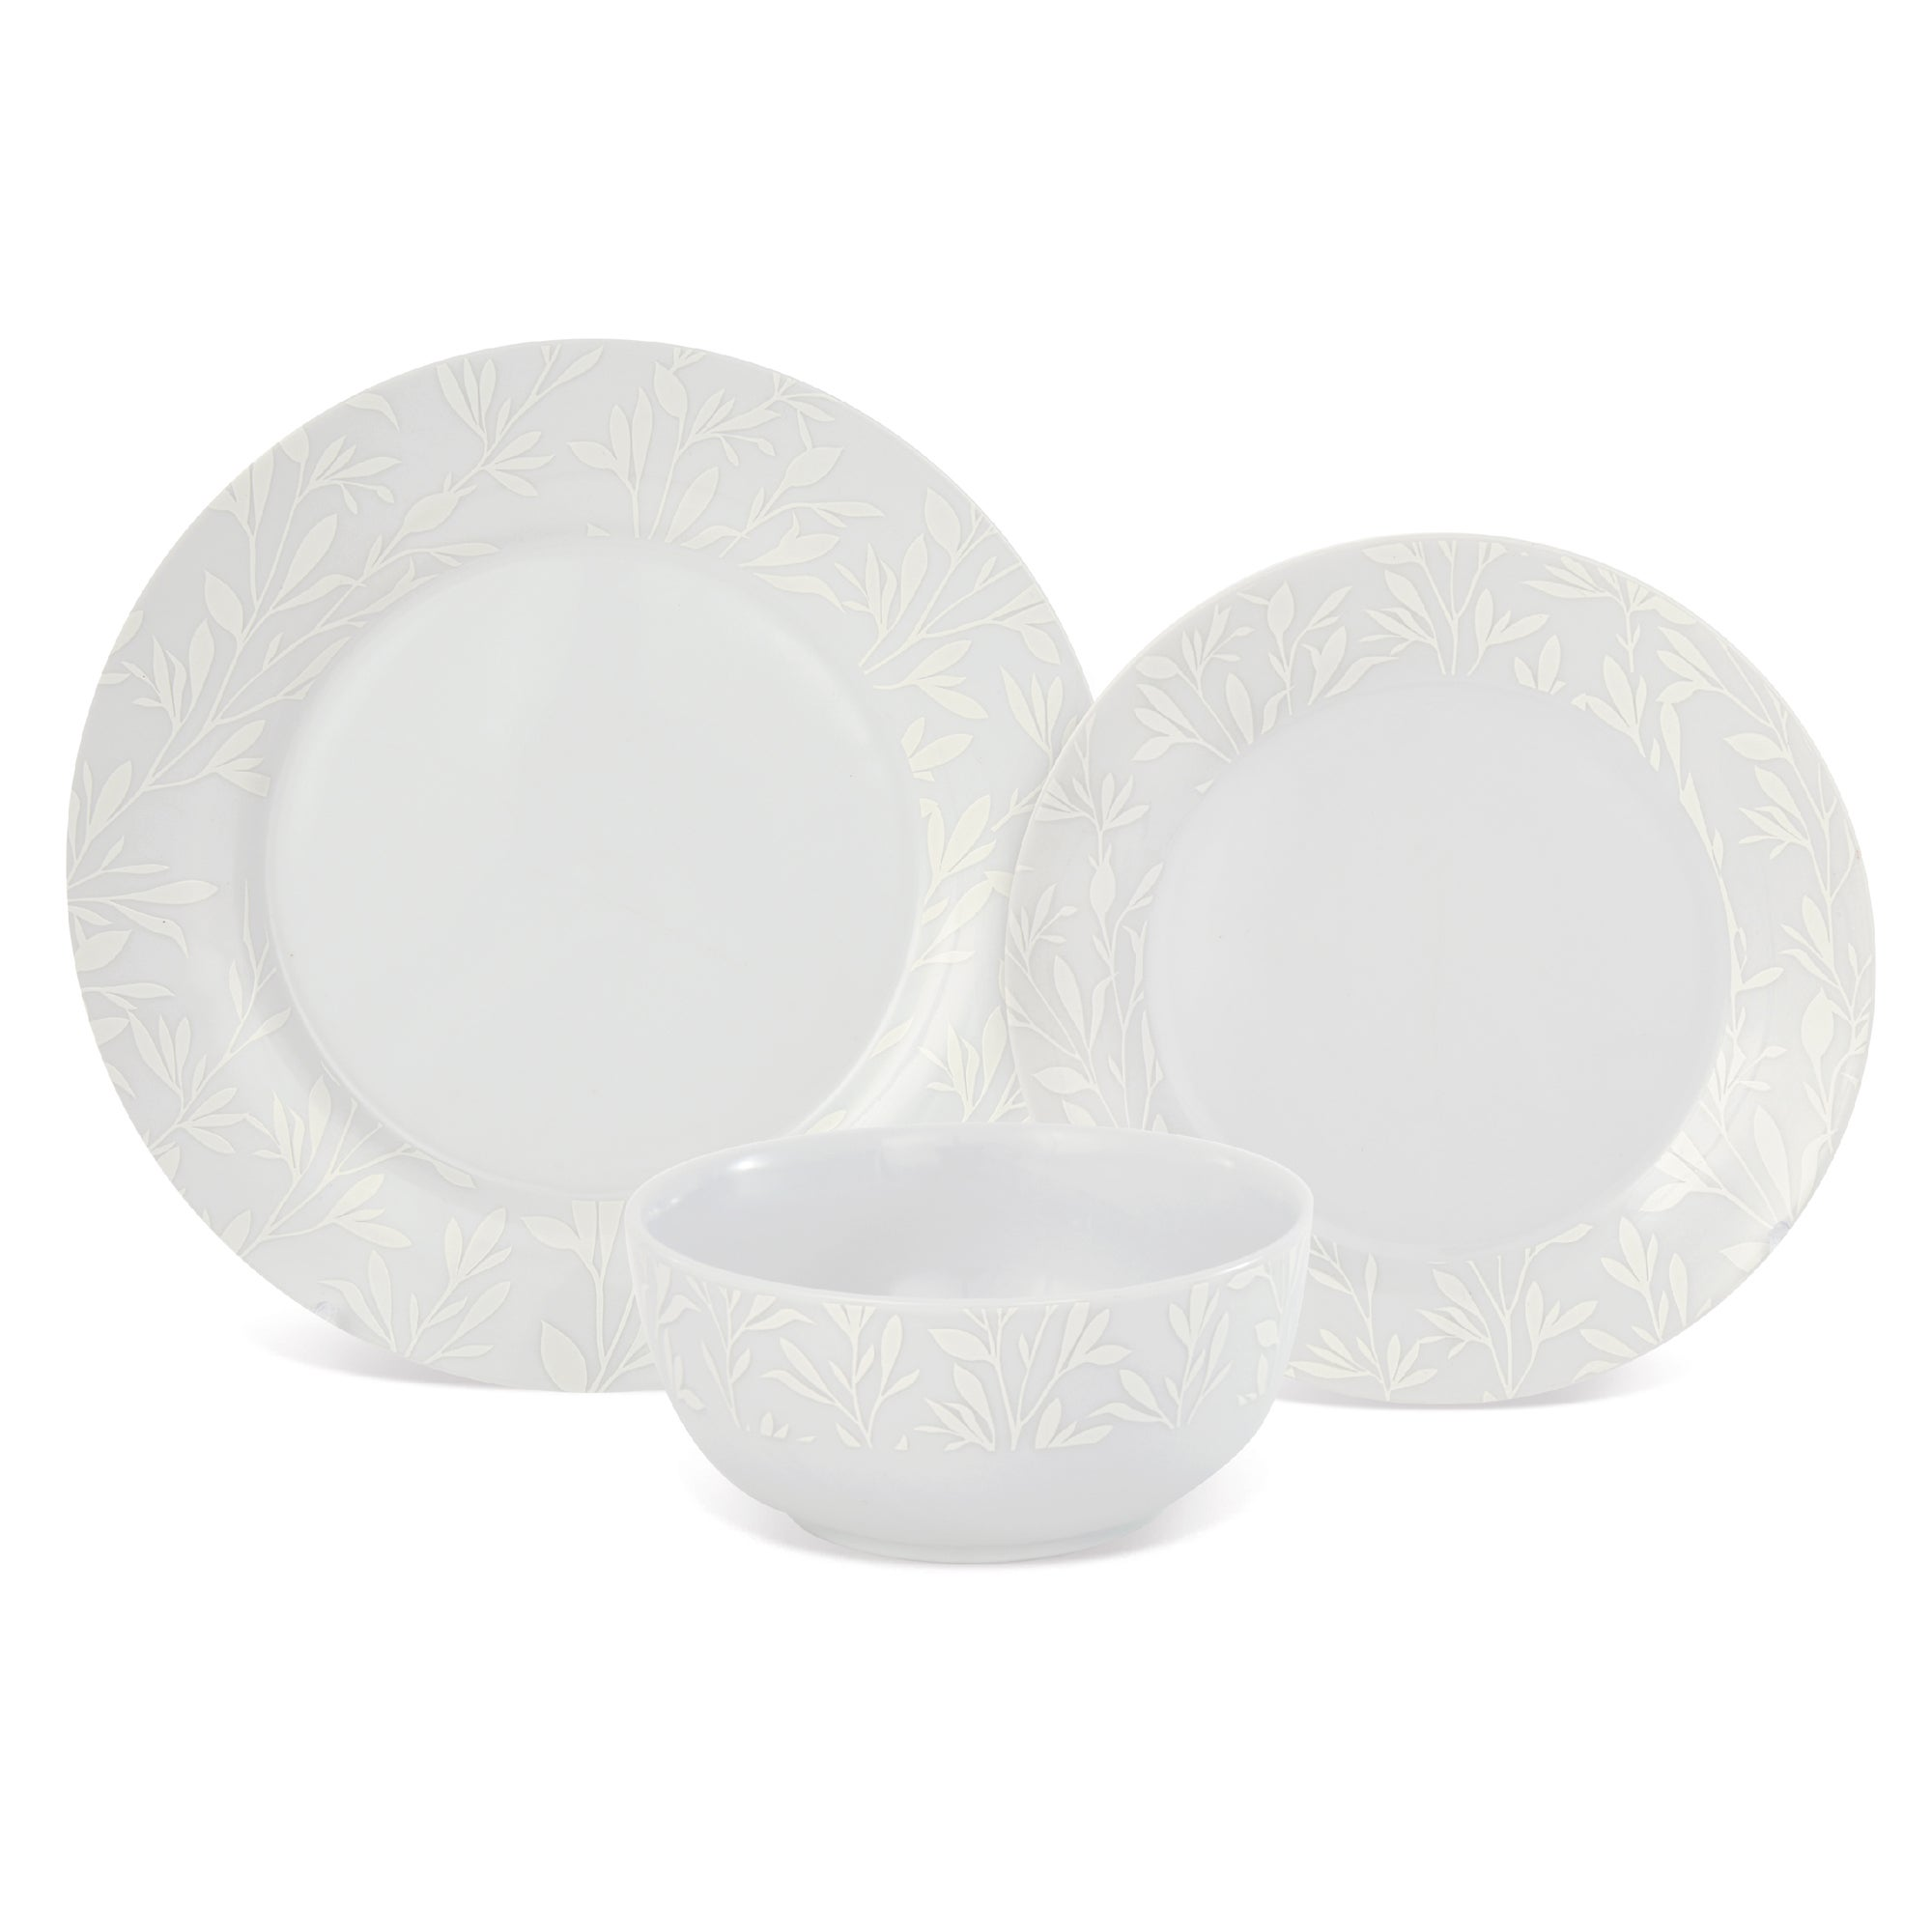 White on White Collection 12 Piece Dinner Set